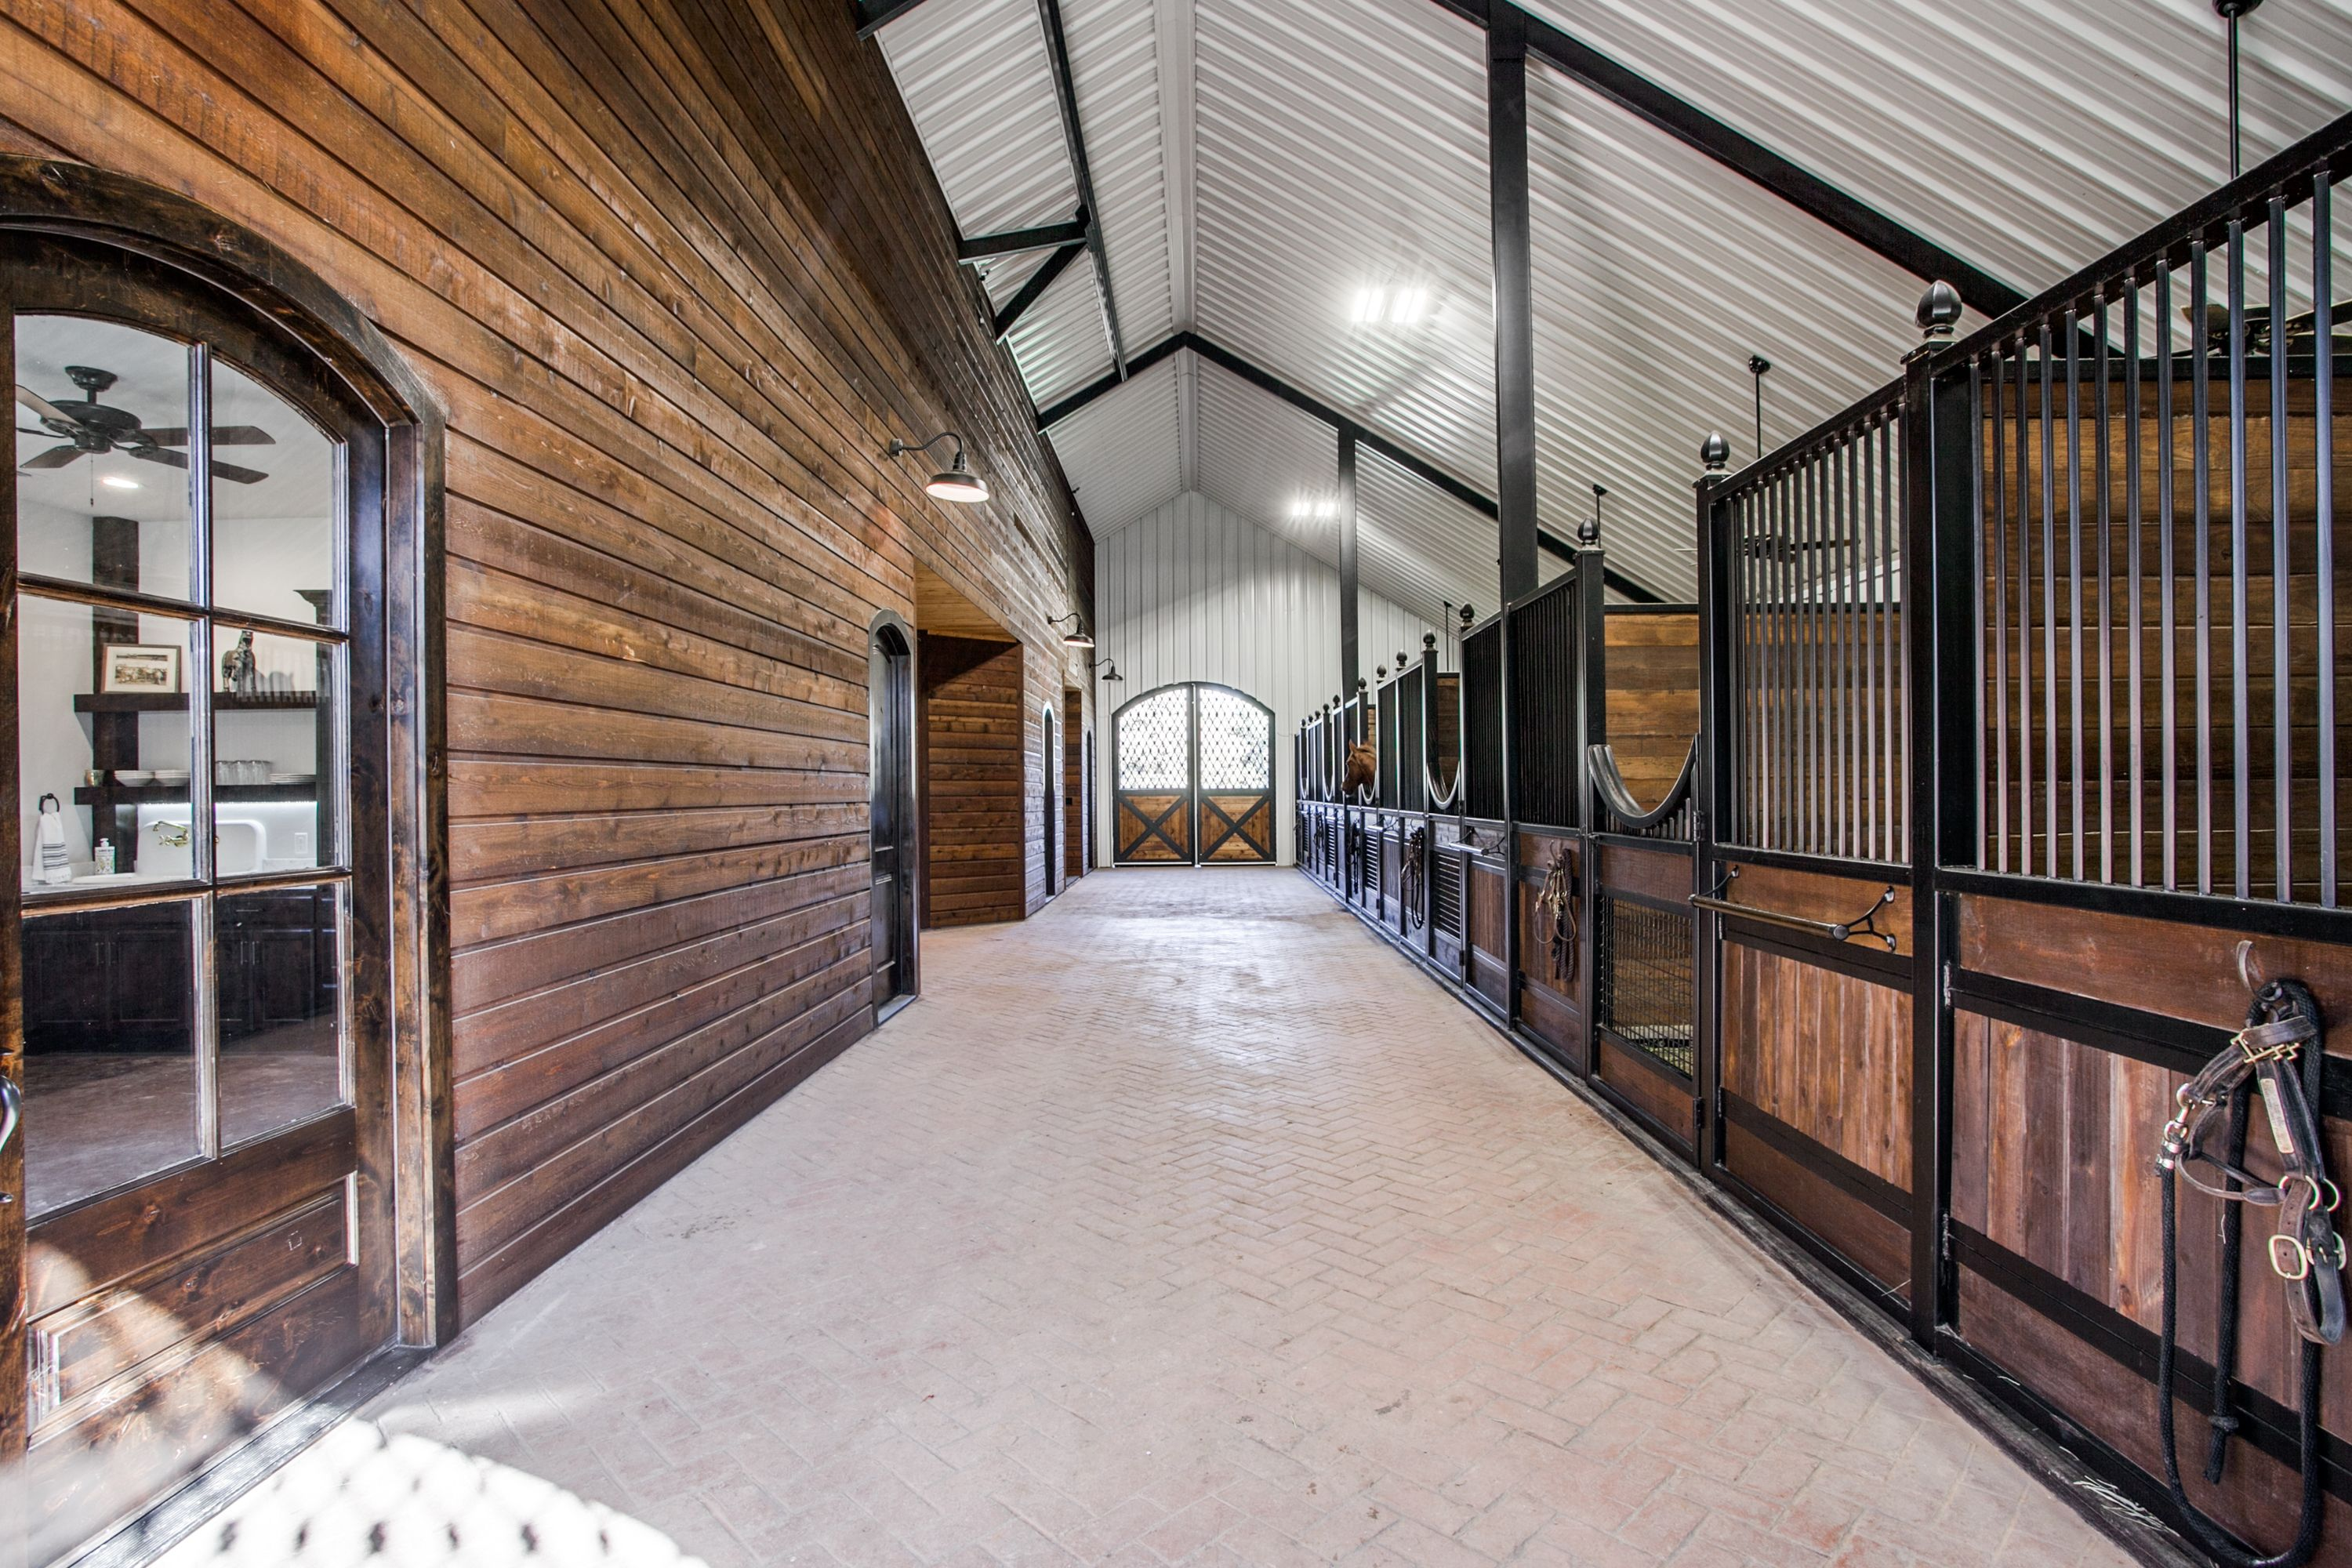 The Most Luxurious Horse Barns You Won't Believe Exist ...